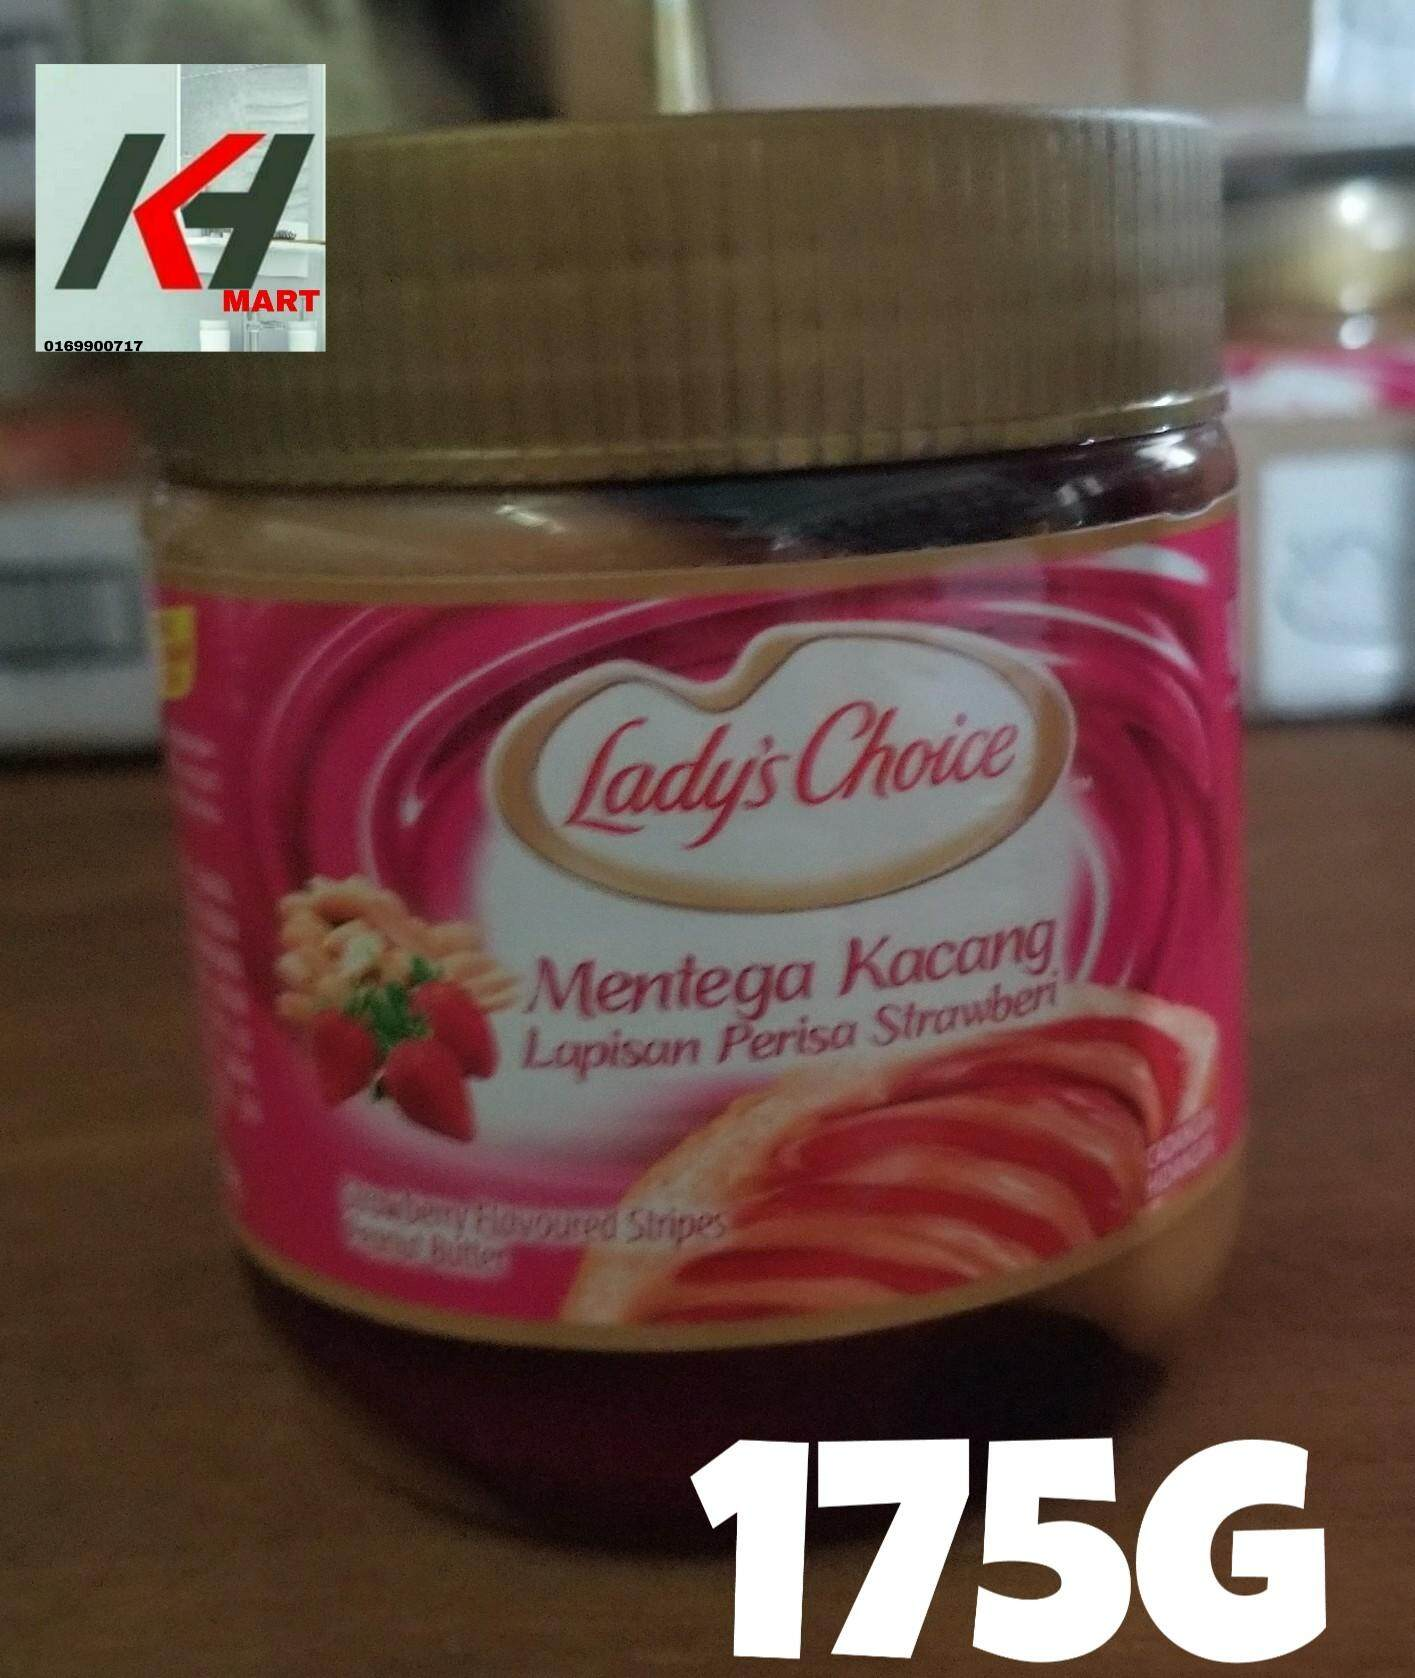 LADY'S CHOICE PEANUT BUTTER (PERISA STRAWBERI) - 175G READY STOCK